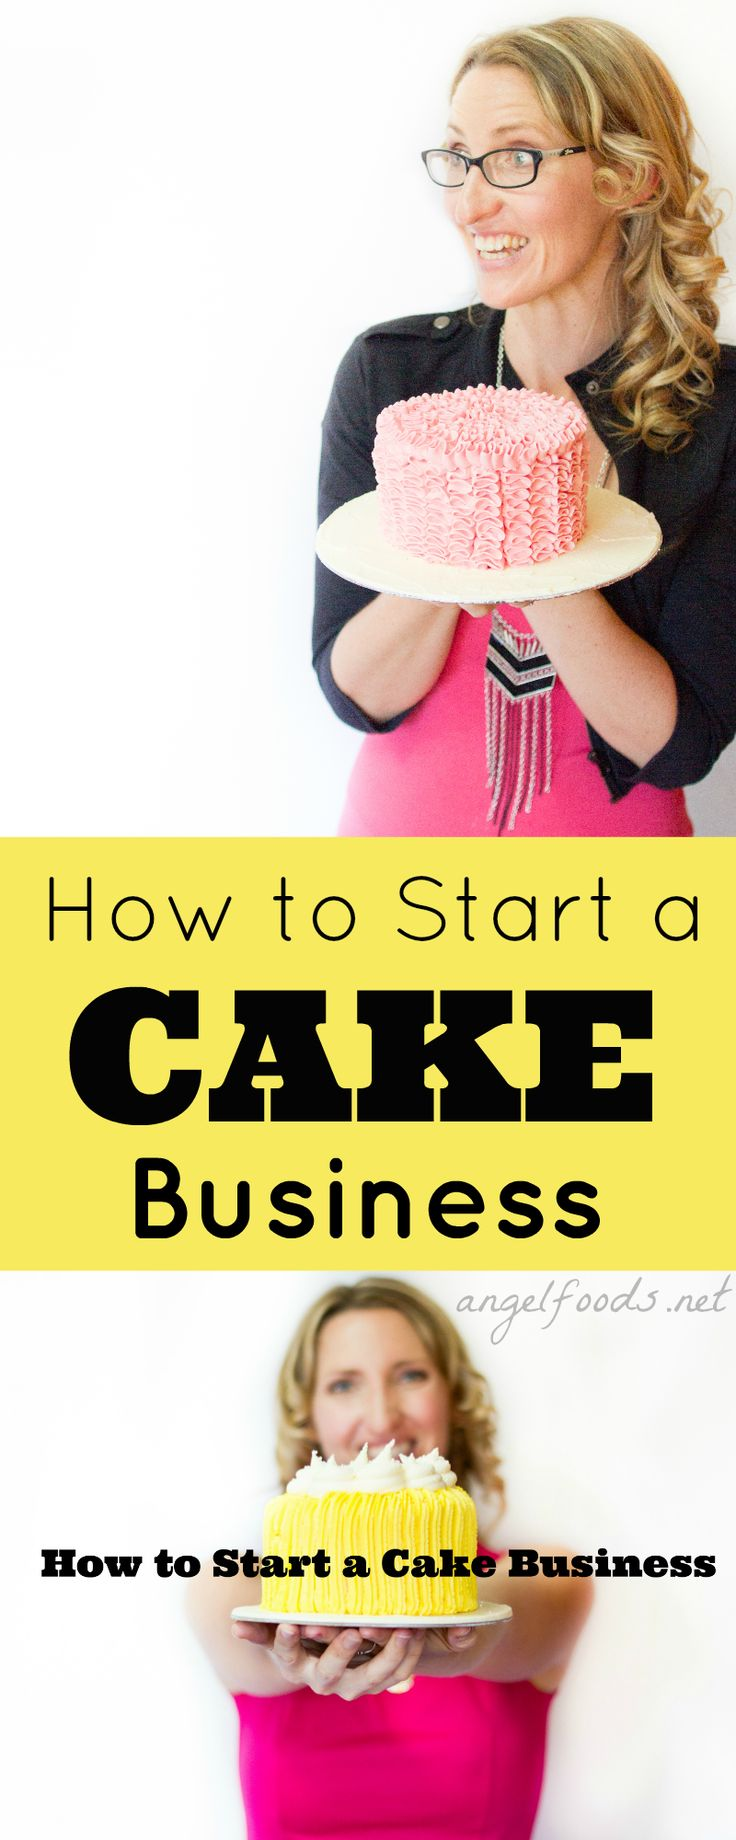 How to Start a Cake Business | What to Do & Where to Start Your Cake Business Wondering what the first step is to getting a cake business going? Whether it is cookies, sweets, cake pops ... Is it easy or hard, or even do-able? | http://angelfoods.net/how_to_start_cake_business/